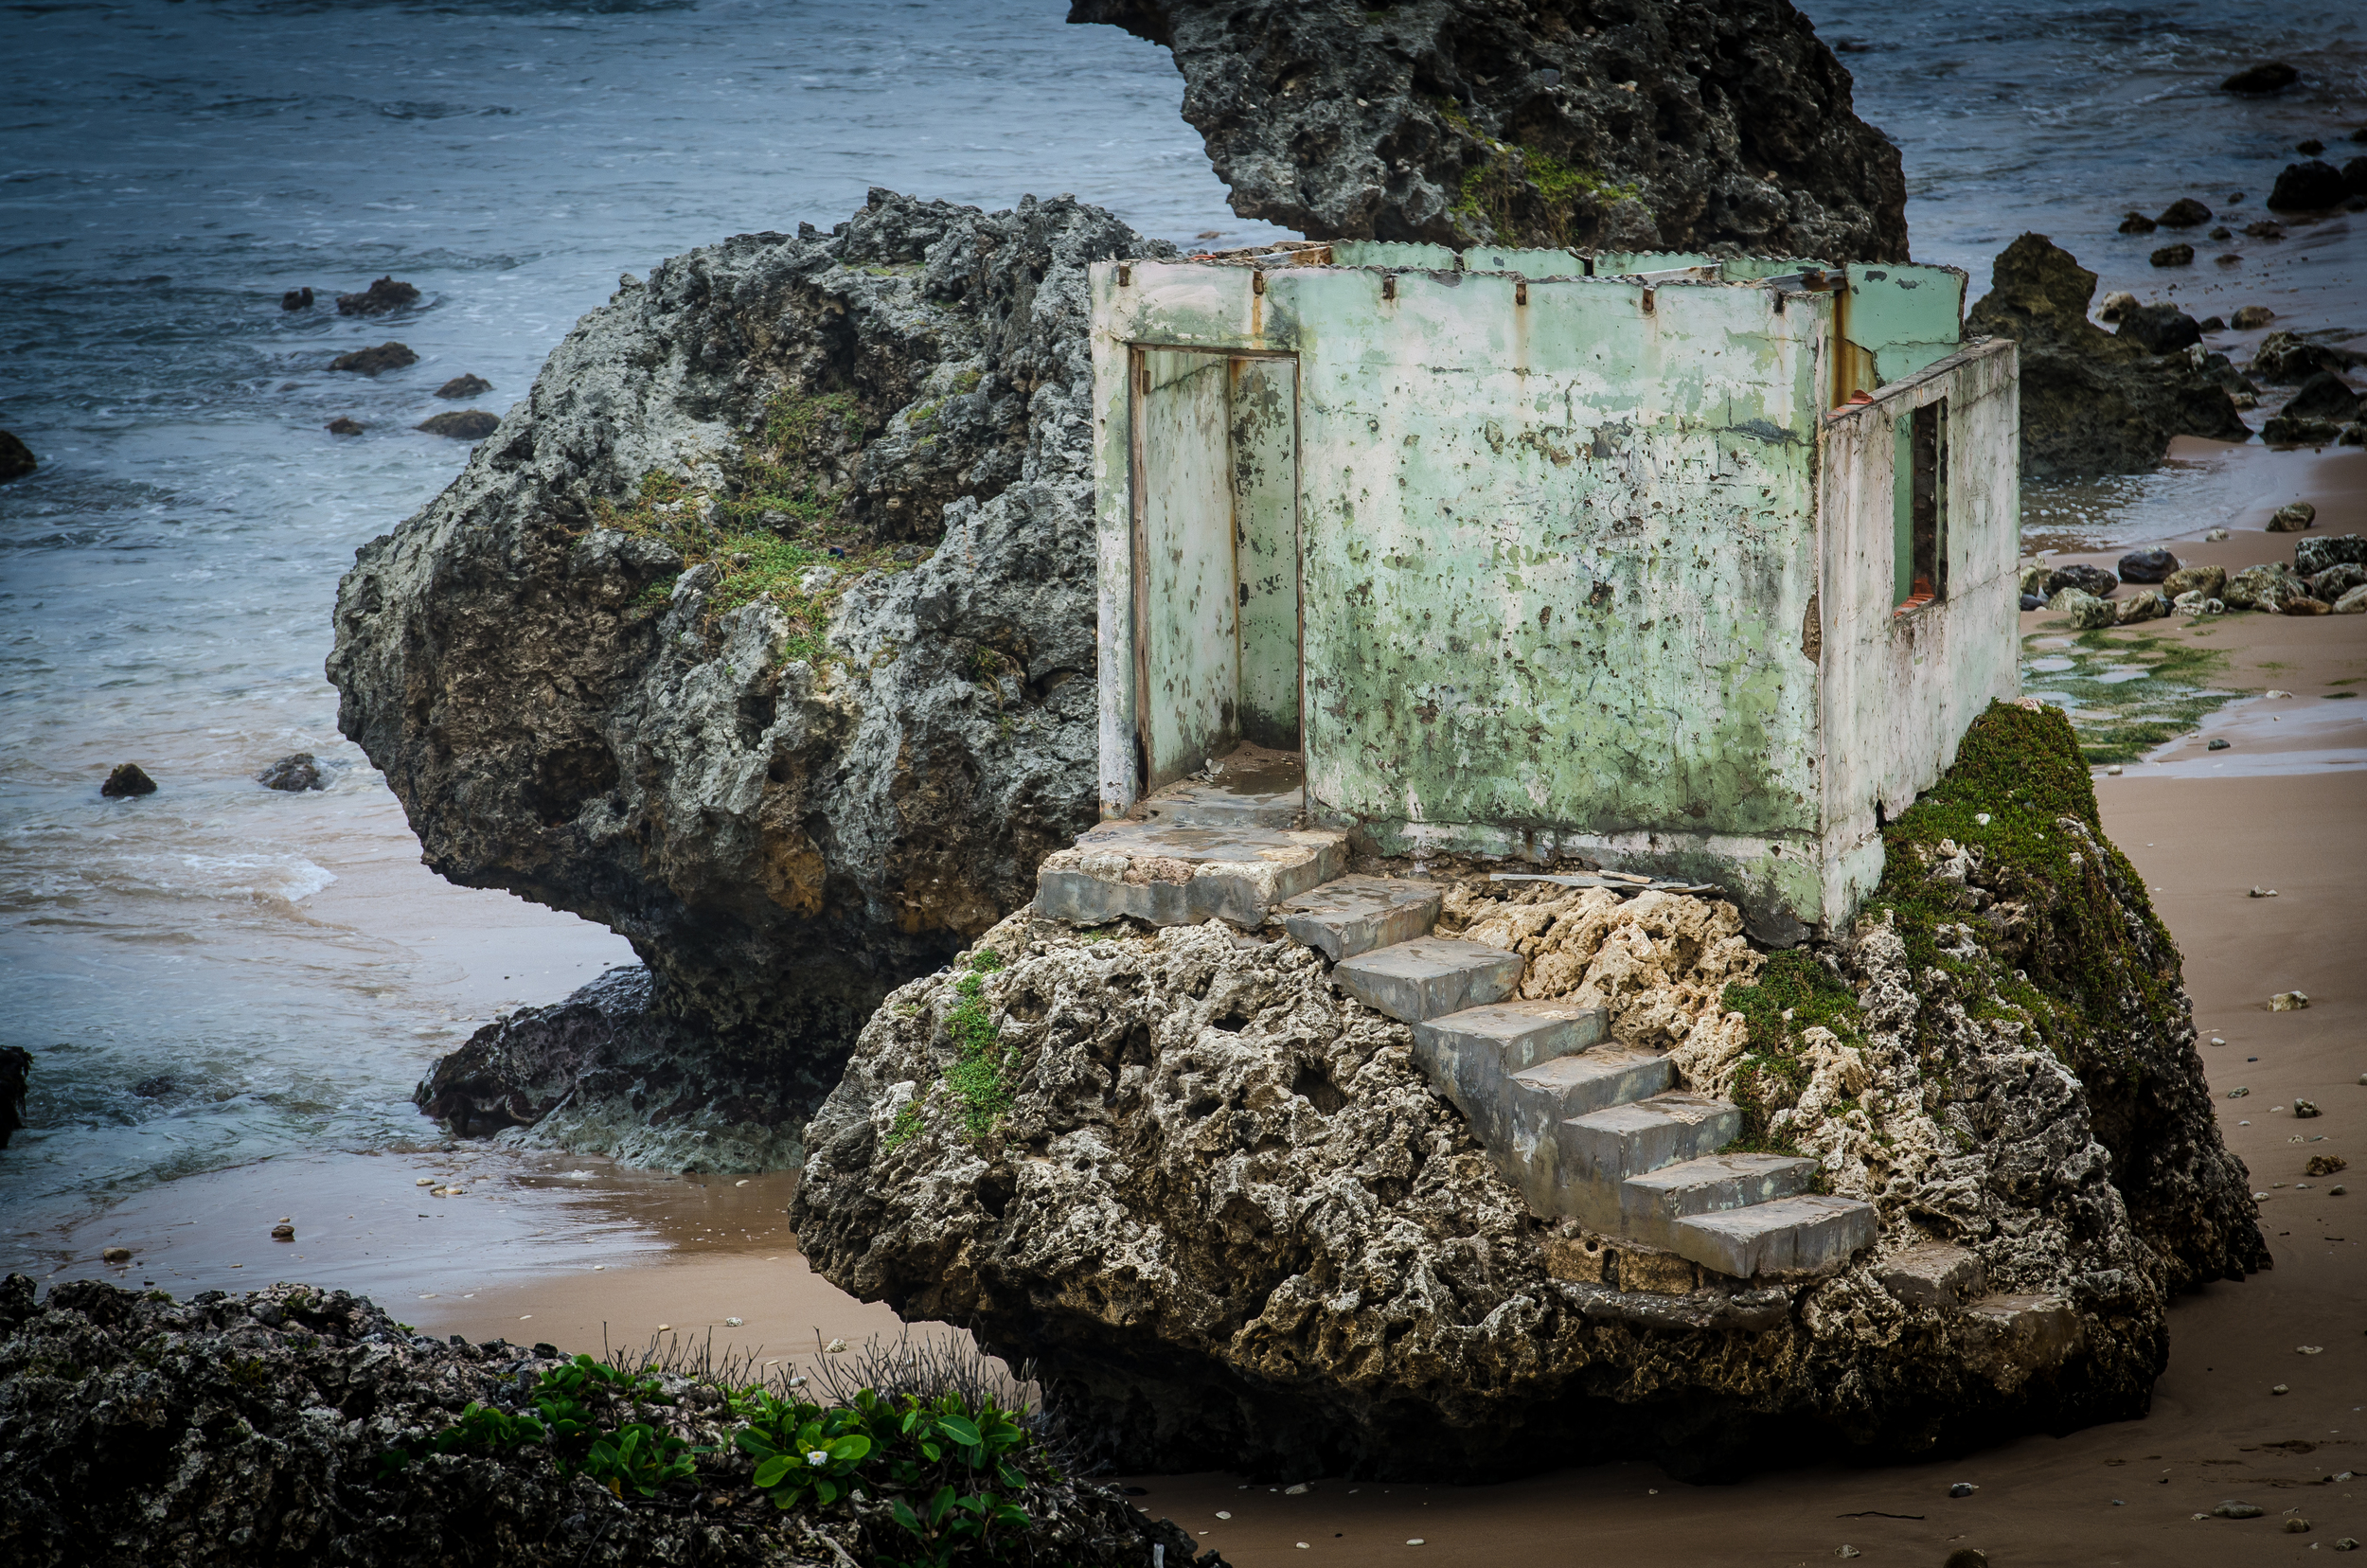 A strange little house on a rock (that's about the best I can do on this one). Orville seemed to think it was built years ago for the surfers to have a place to change.